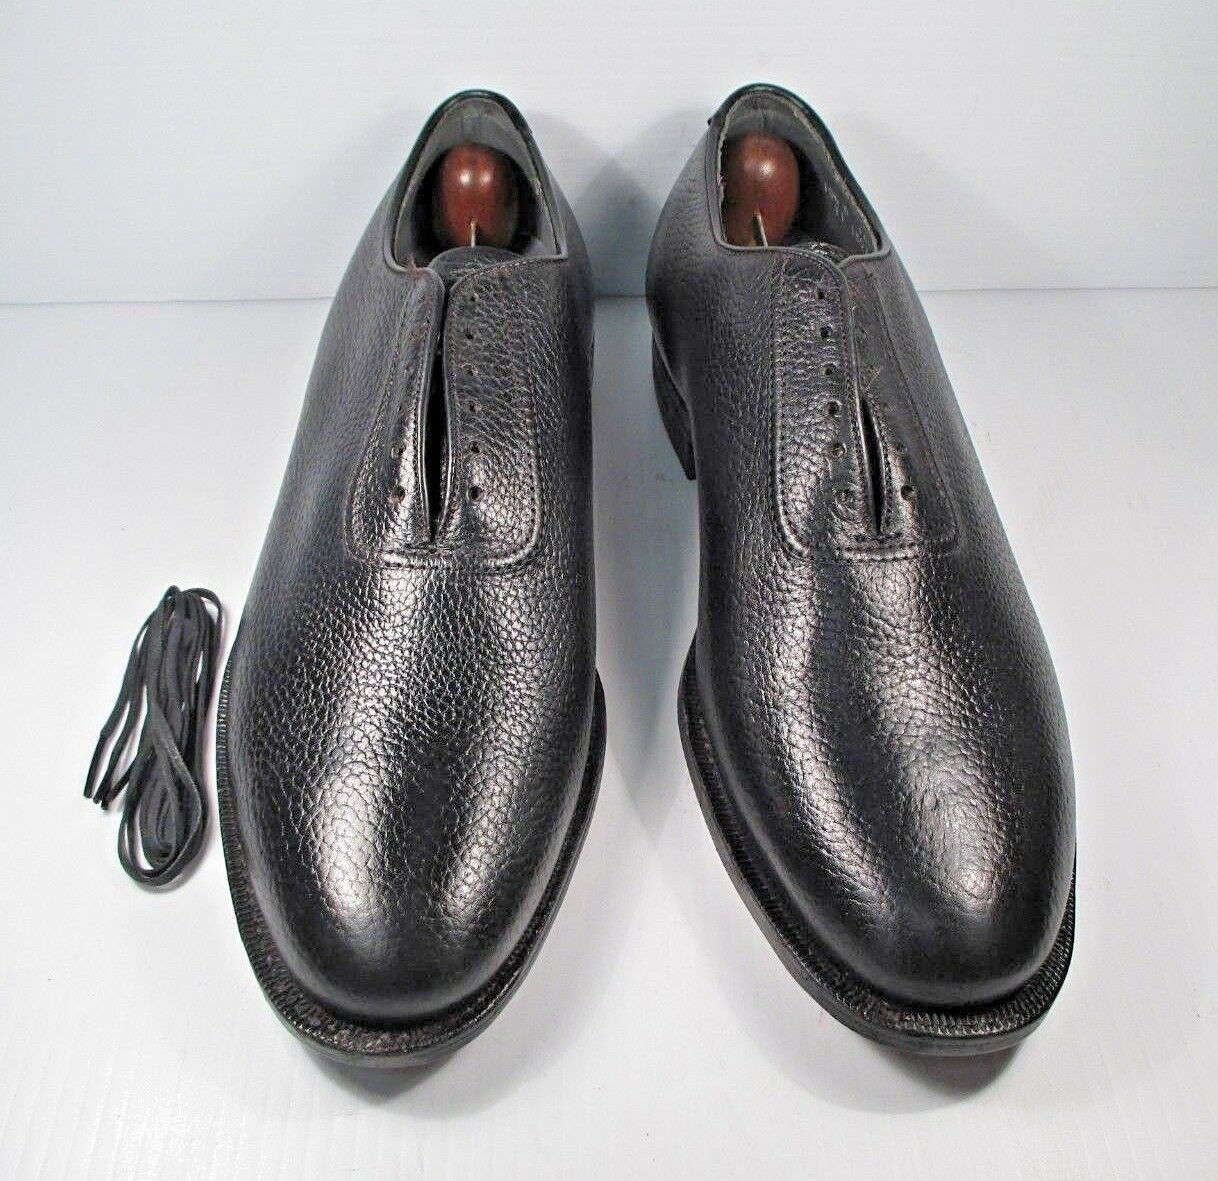 nero Leather scarpe Classics Wholecut Plain Toe Oxfords Dimensione 10.5 D Made in USA